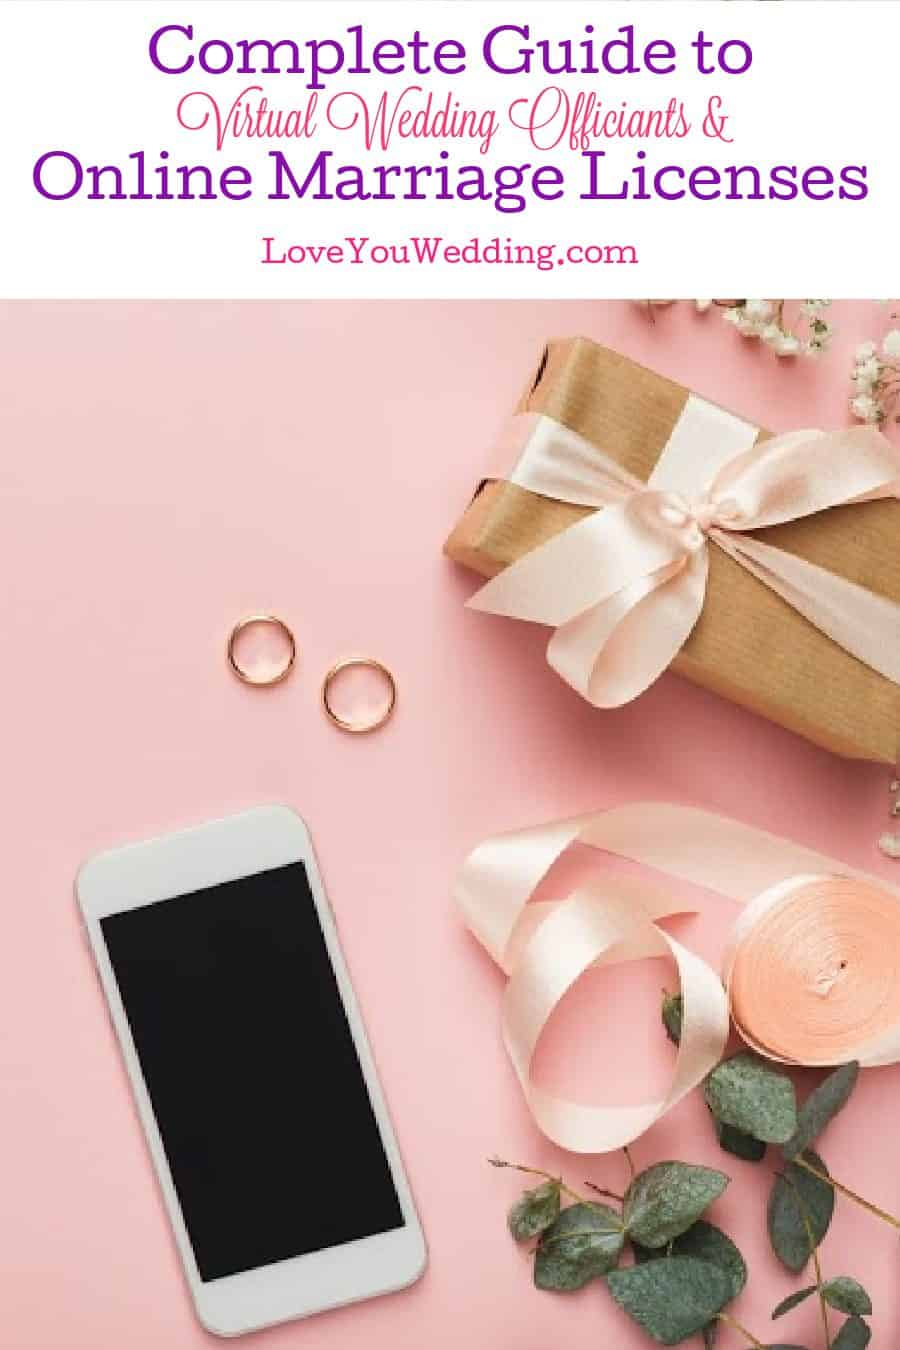 Tying the knot online? You definitely need our guide to online marriage licenses and virtual wedding officiants! Check it out!